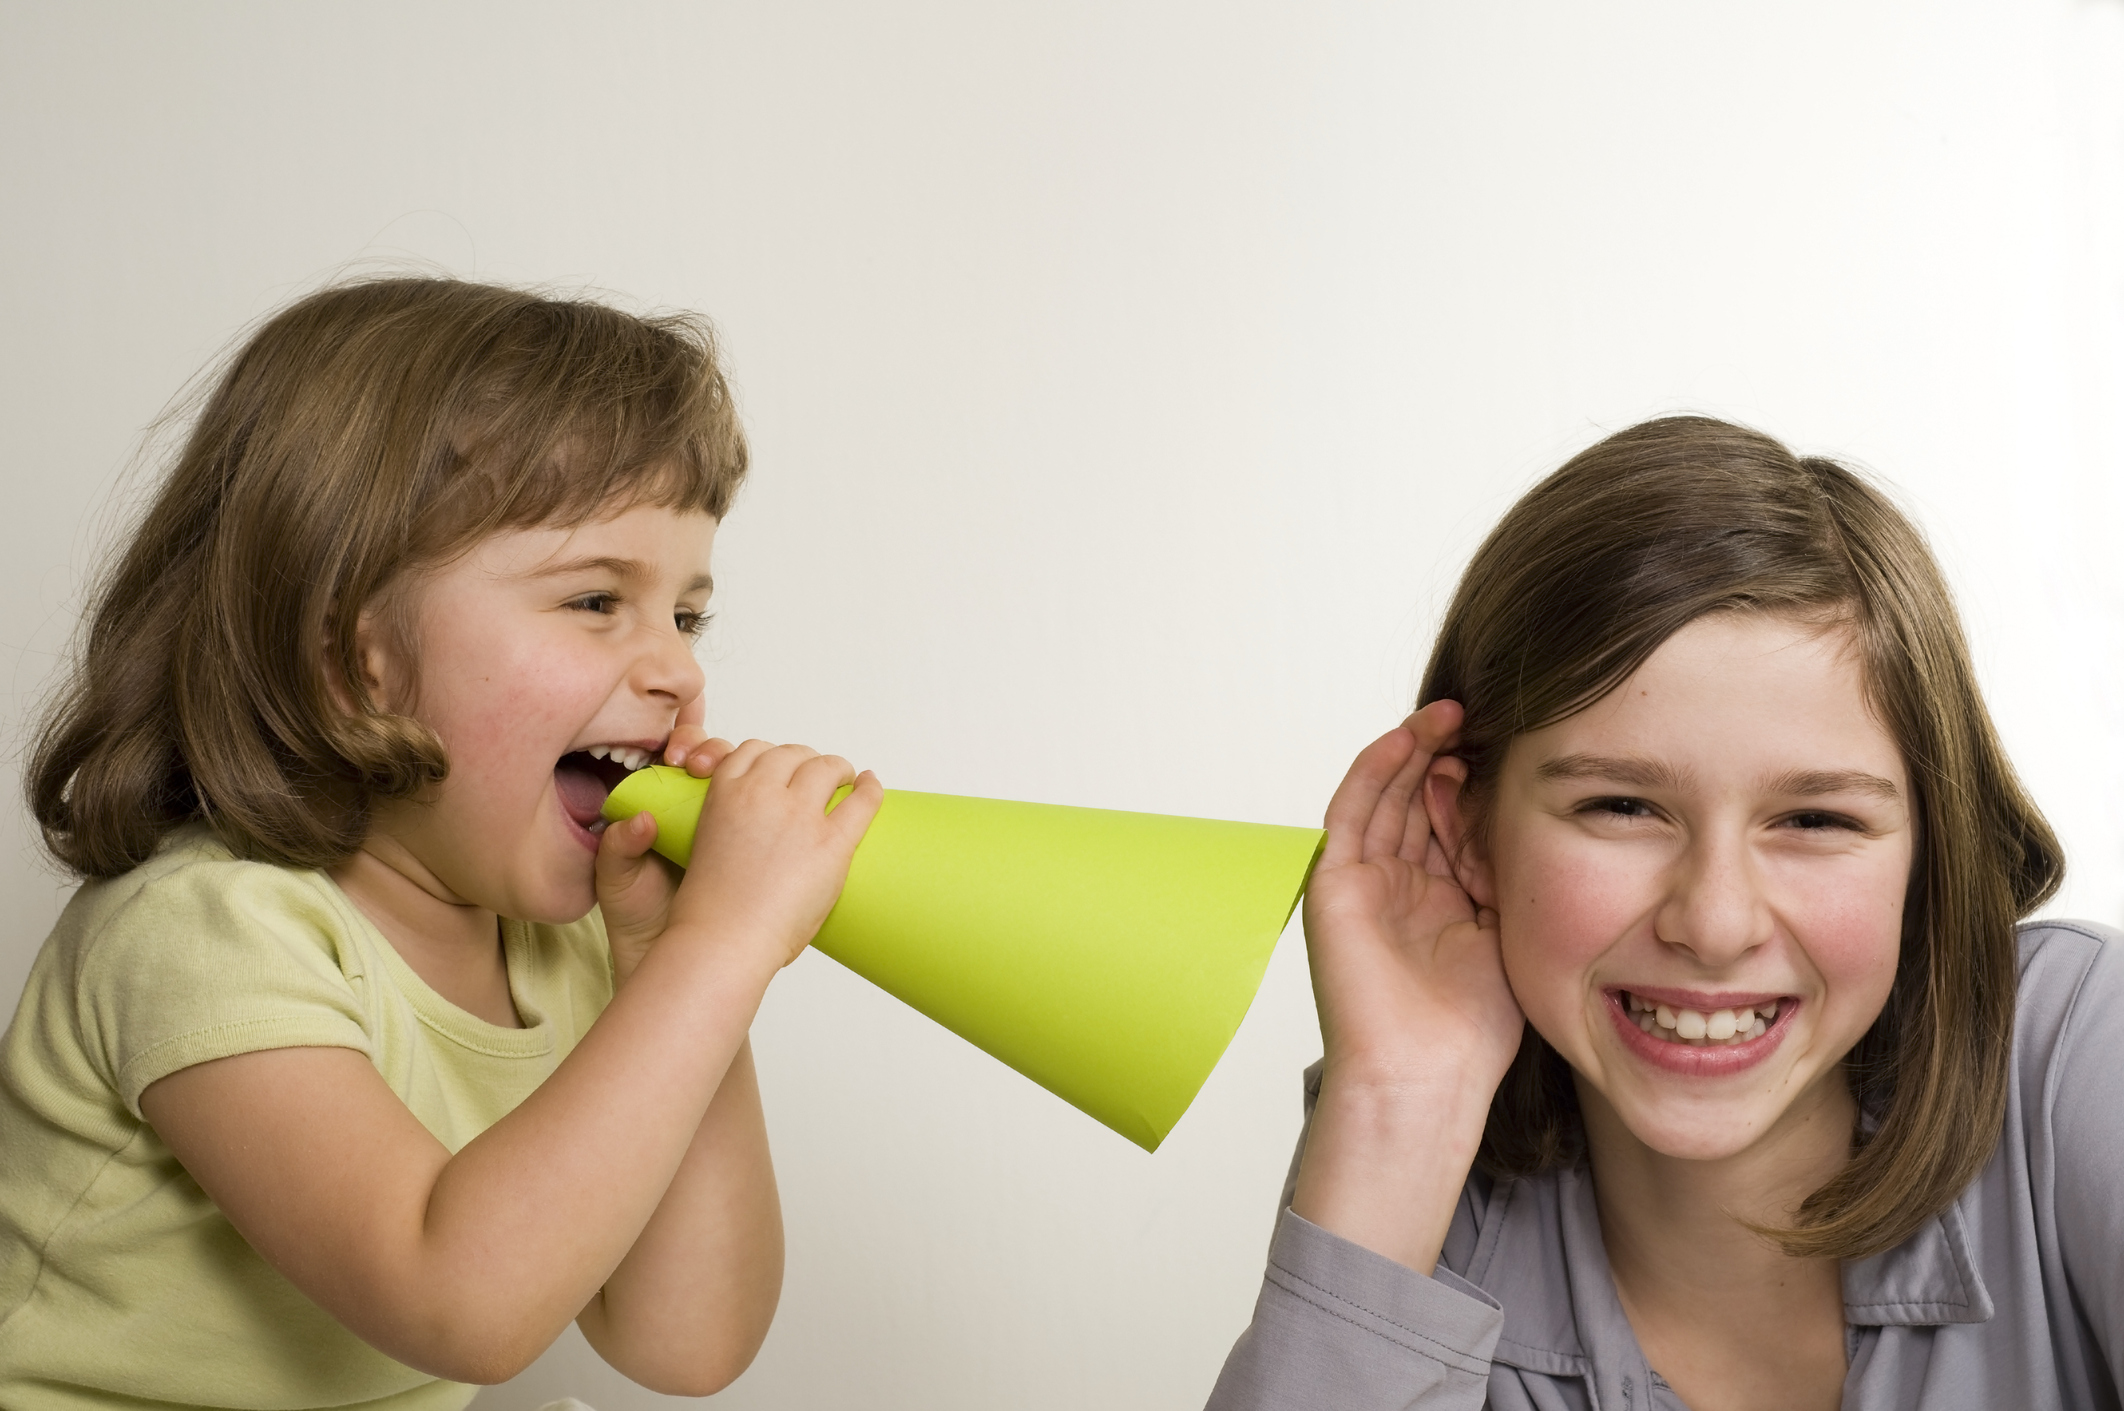 Girl shouting into a megaphone while another girl listens